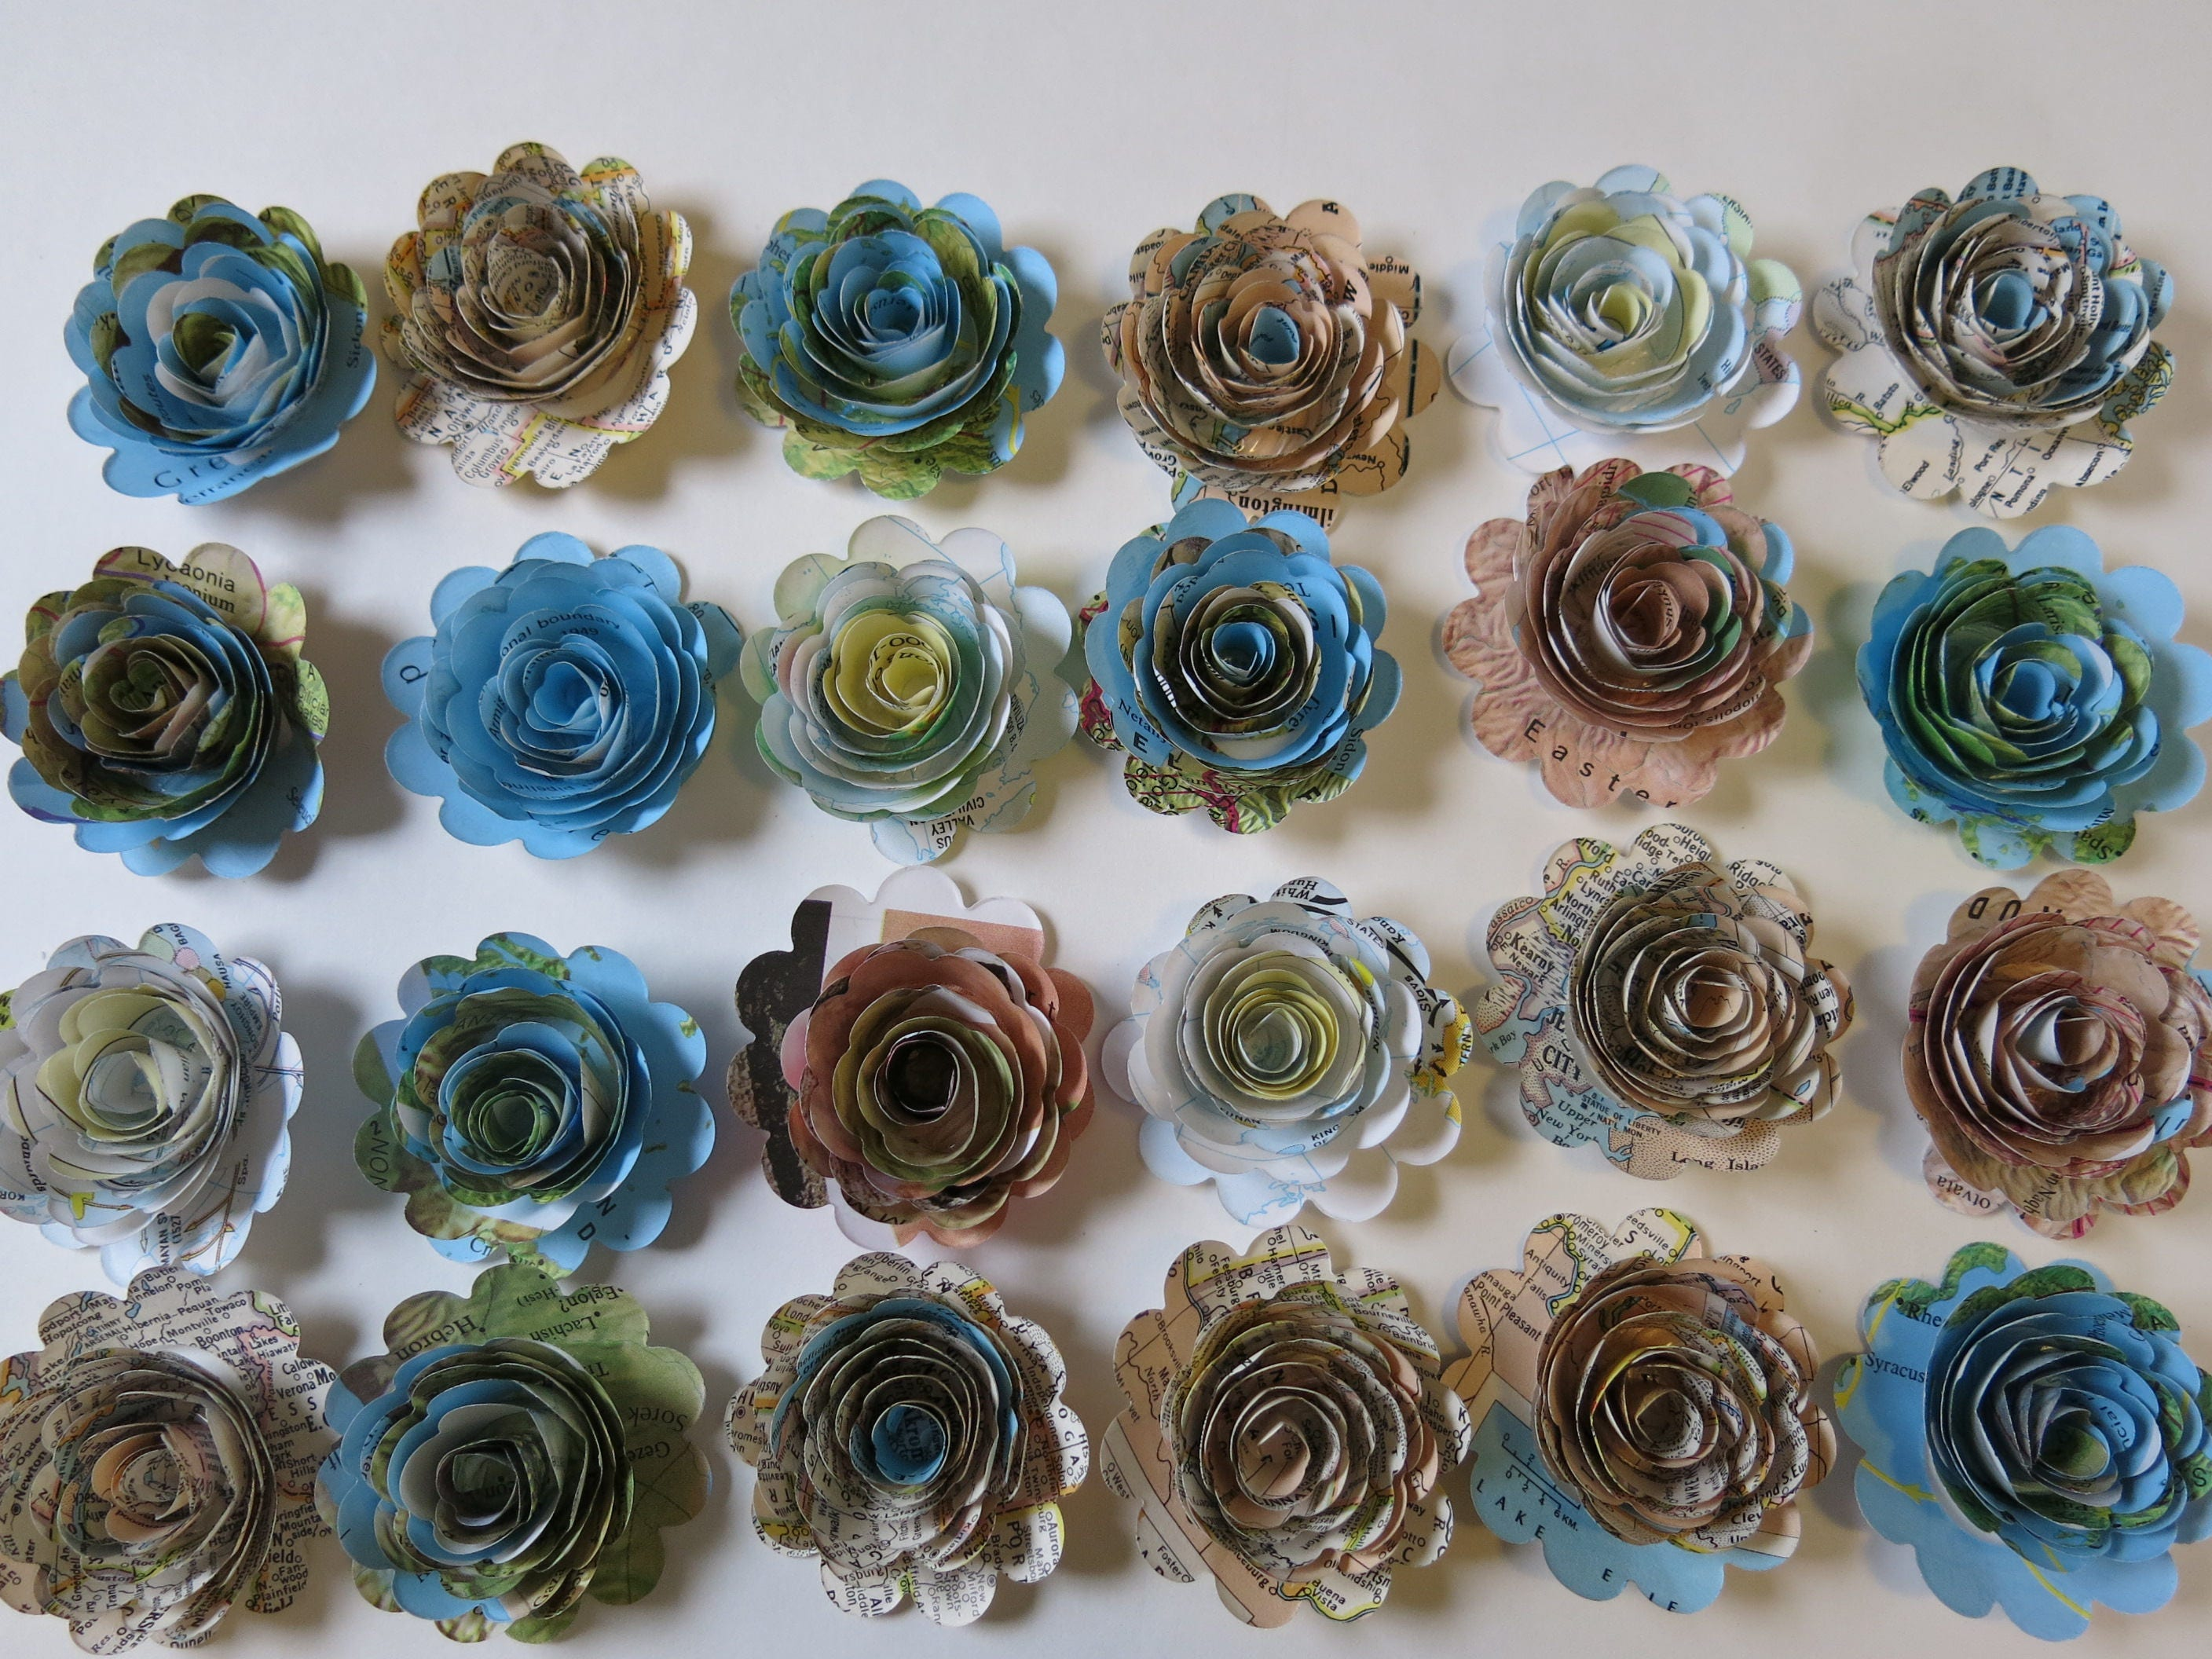 Scalloped Set 24 World Atlas Paper Flowers Loose 15 Etsy